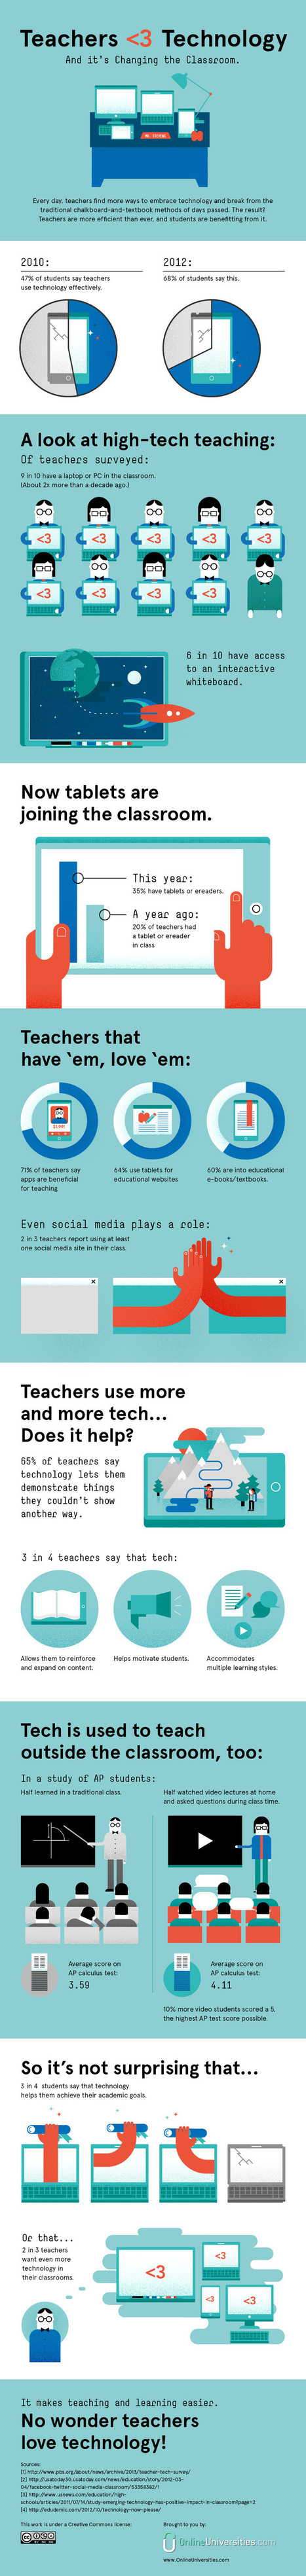 Teachers Love Technology | Social Mercor | Scoop.it